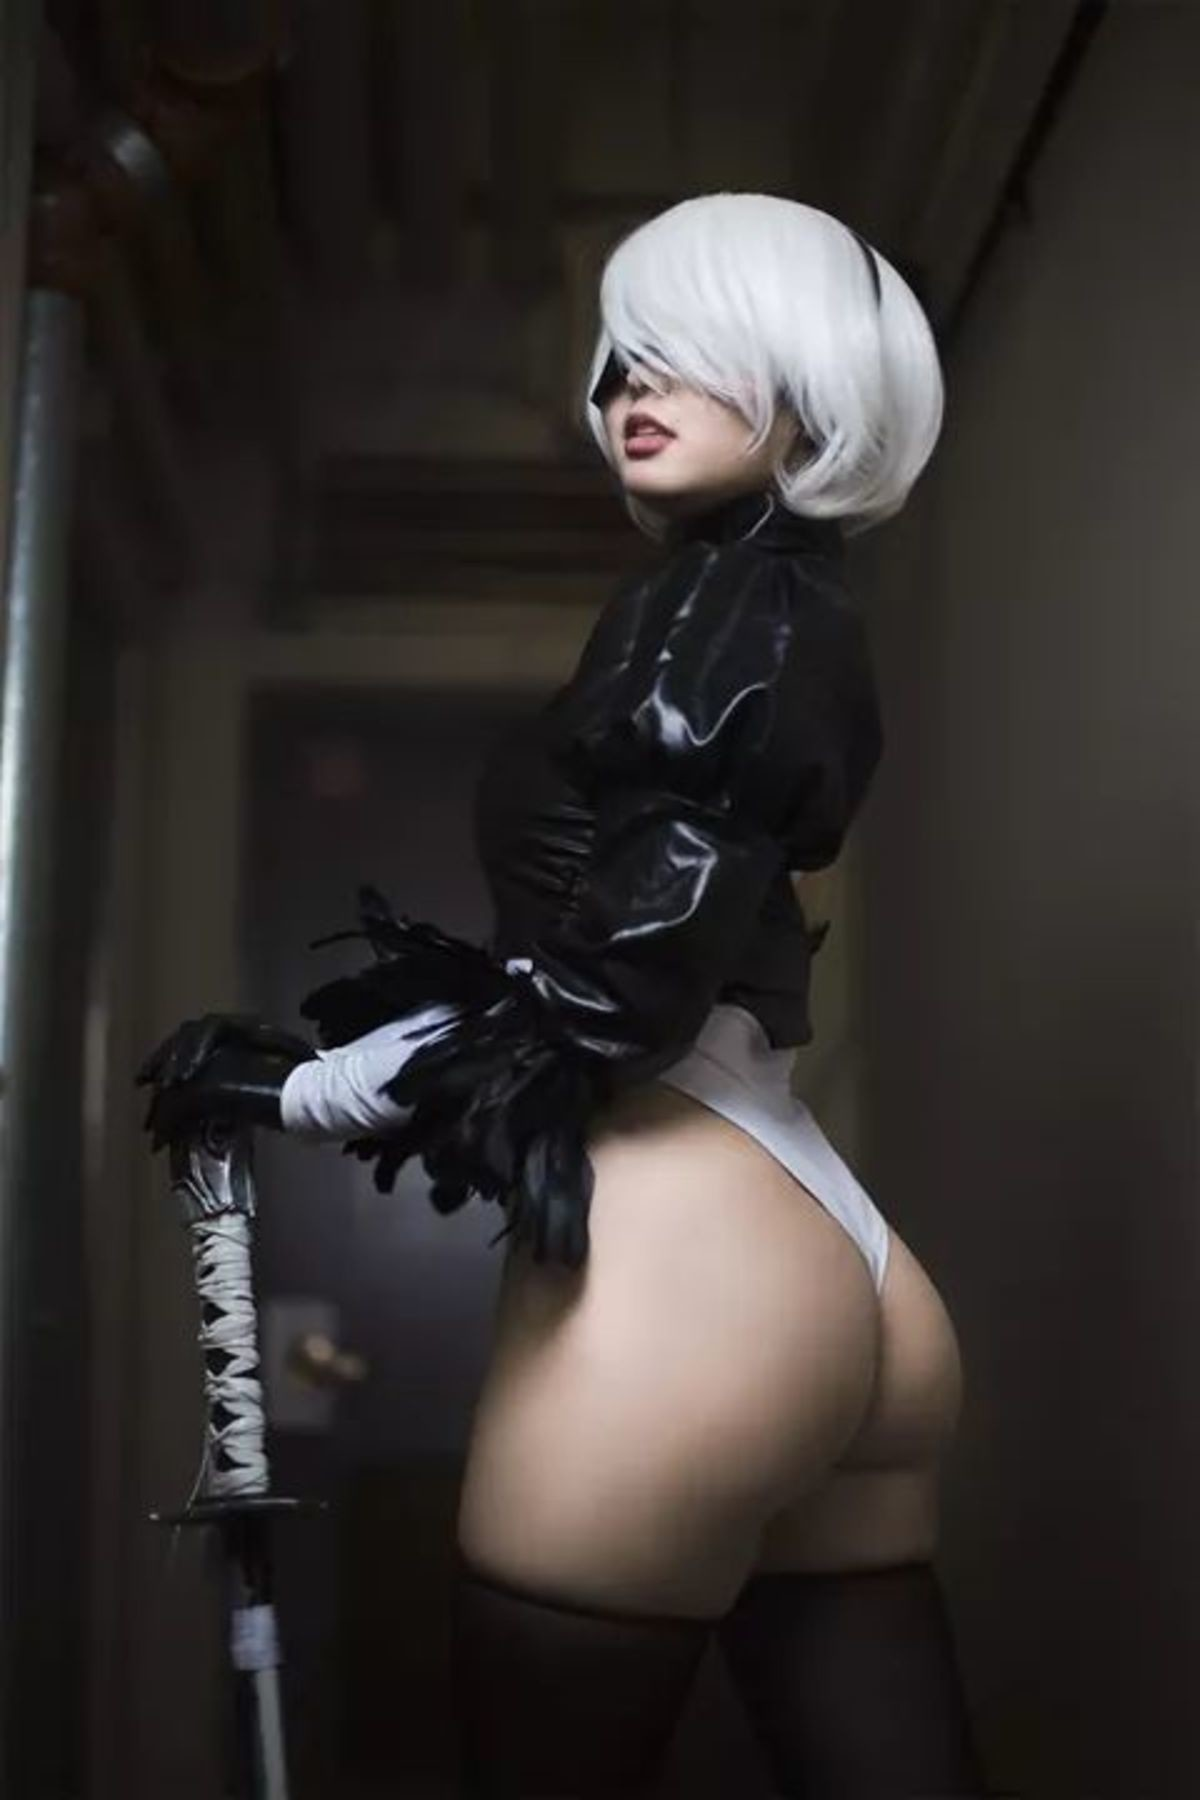 Wet Slapping Noises. Cyriichii @ Facebook join list: ThiccThighs (4608 subs)Mention History join list:. The ass gives me life.